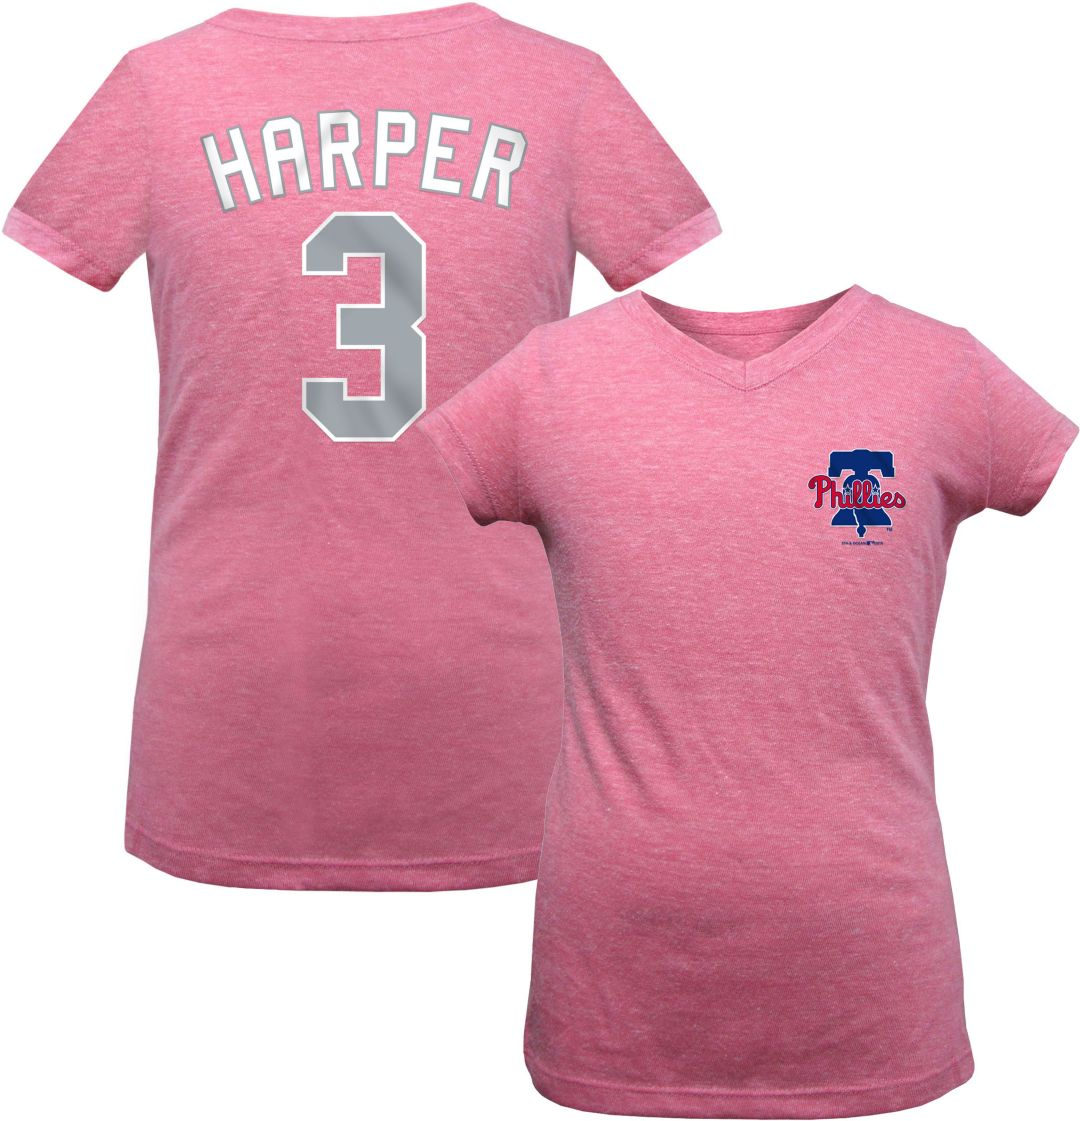 on sale 06cf4 e61dd New Era Youth Girls' Philadelphia Phillies Bryce Harper Tri-Blend T-Shirt